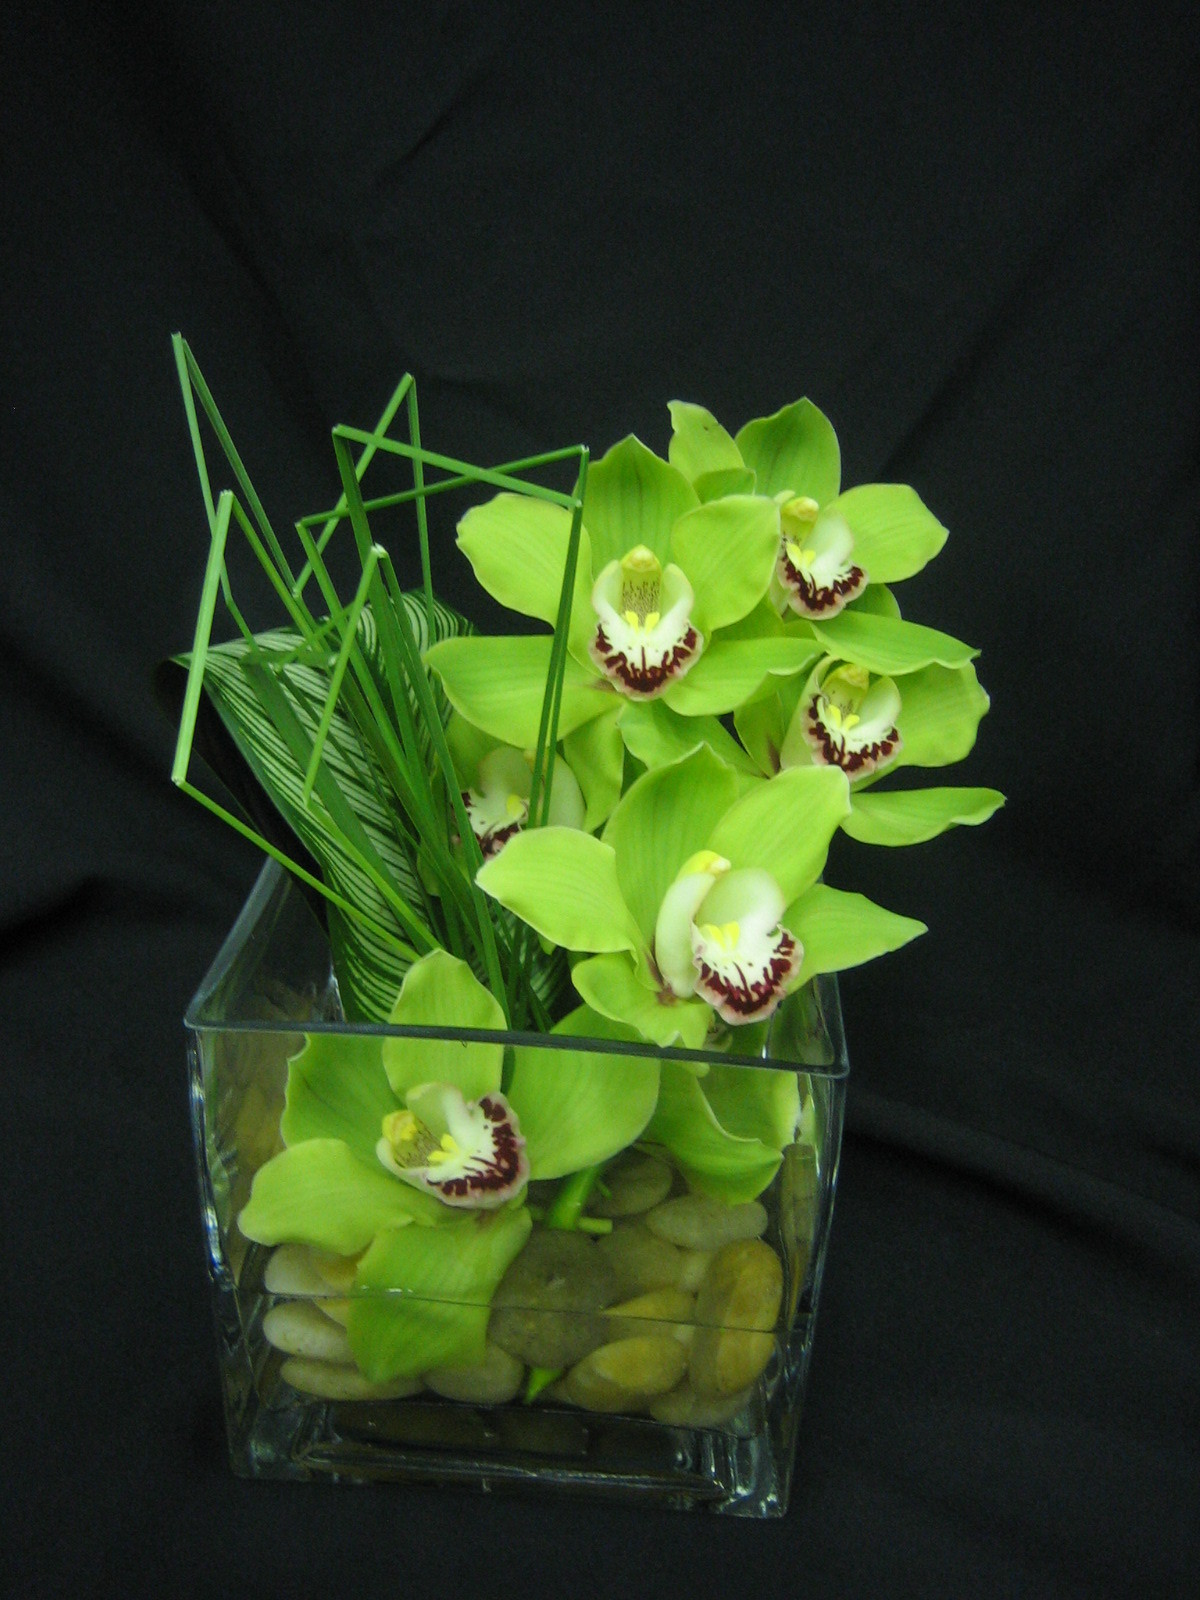 Flowers & Decor, green, Centerpieces, Modern, Flowers, Modern Wedding Flowers & Decor, Centerpiece, Orchids, Arrangement, Bar, Starbright floral design, Cymbidiums